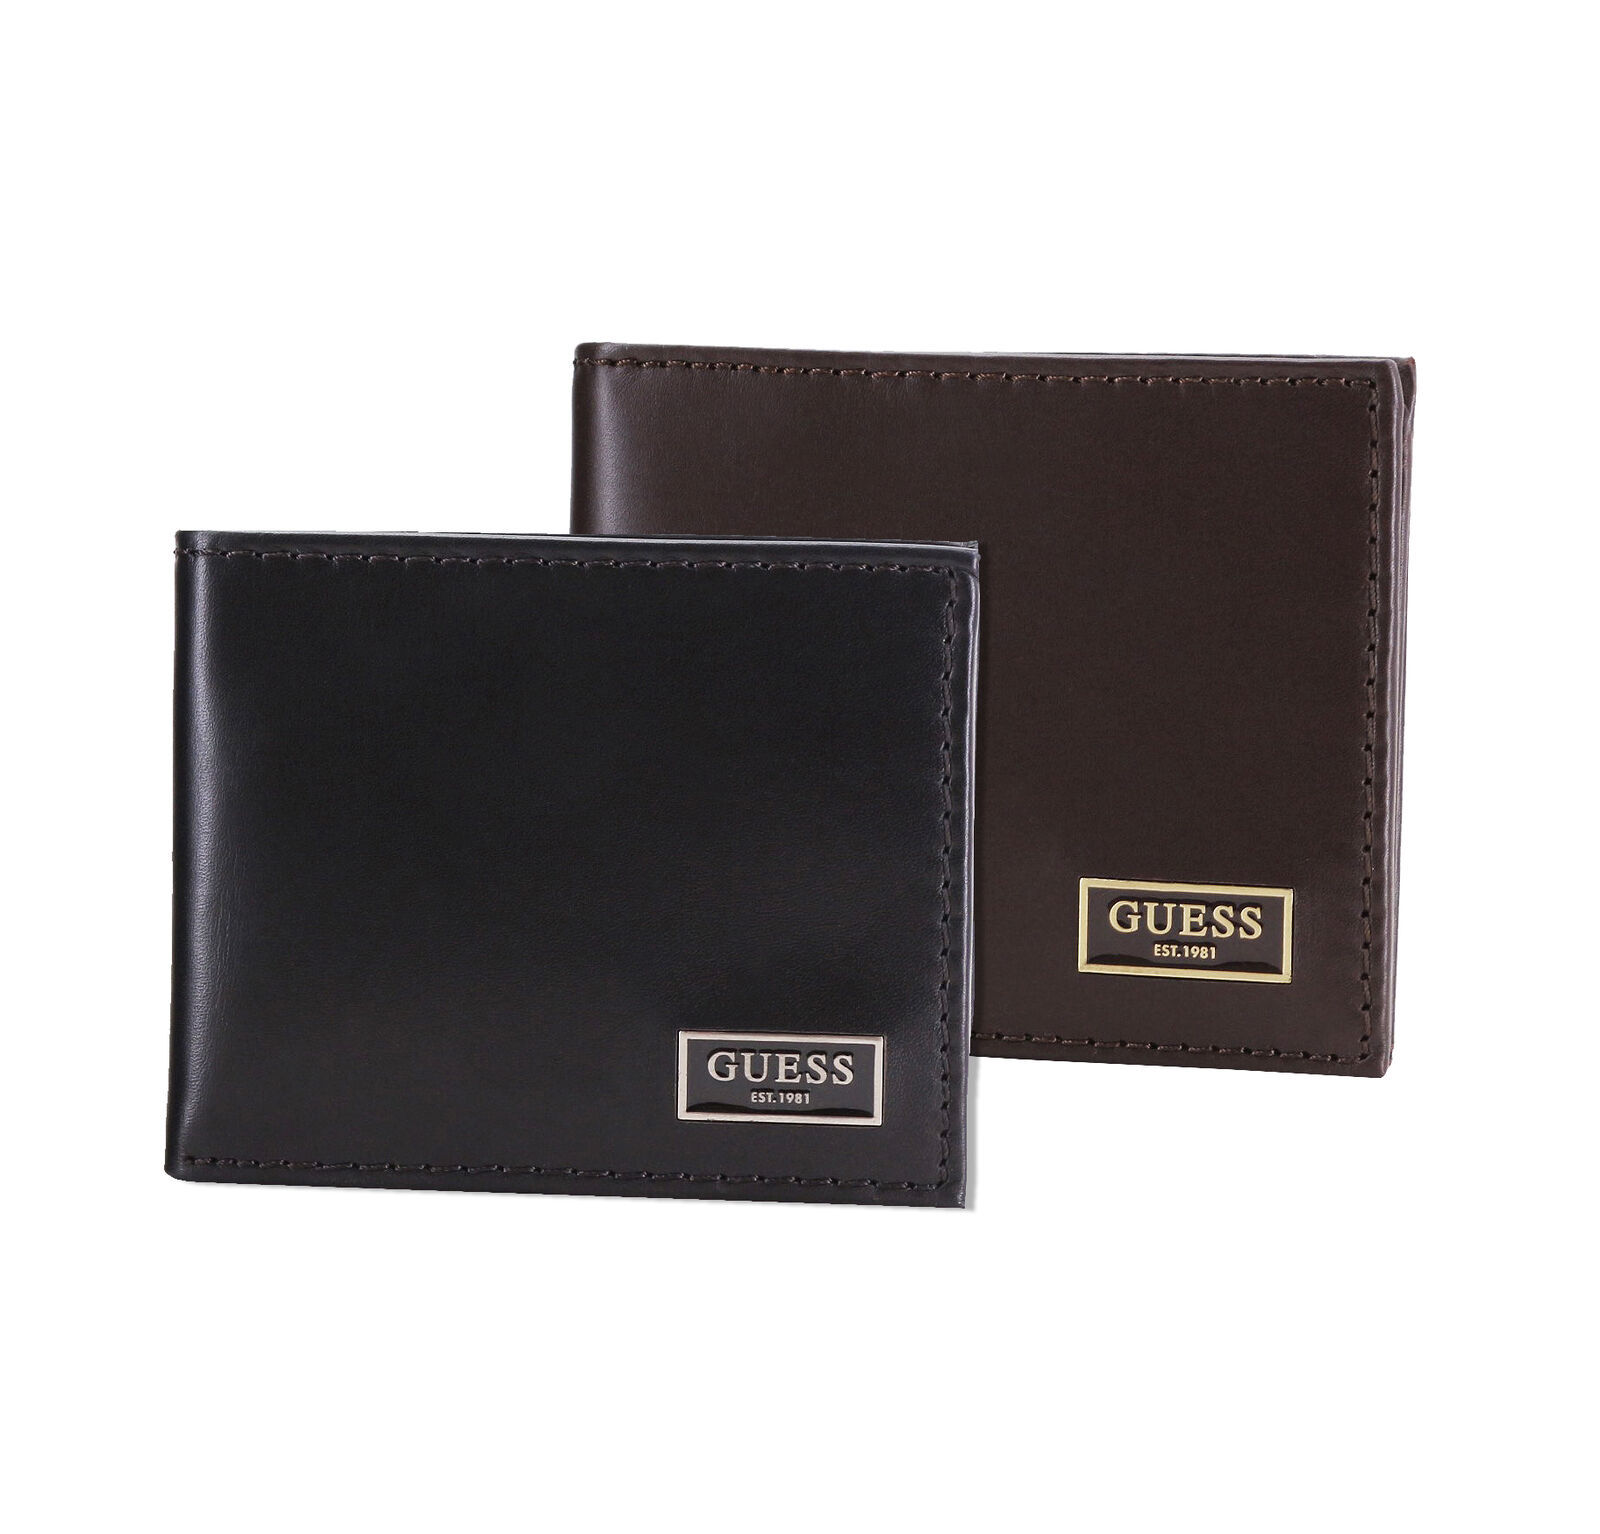 New Guess Men's Genuine Leather Credit Card ID Wallet Excap Slimfold 31GU130050